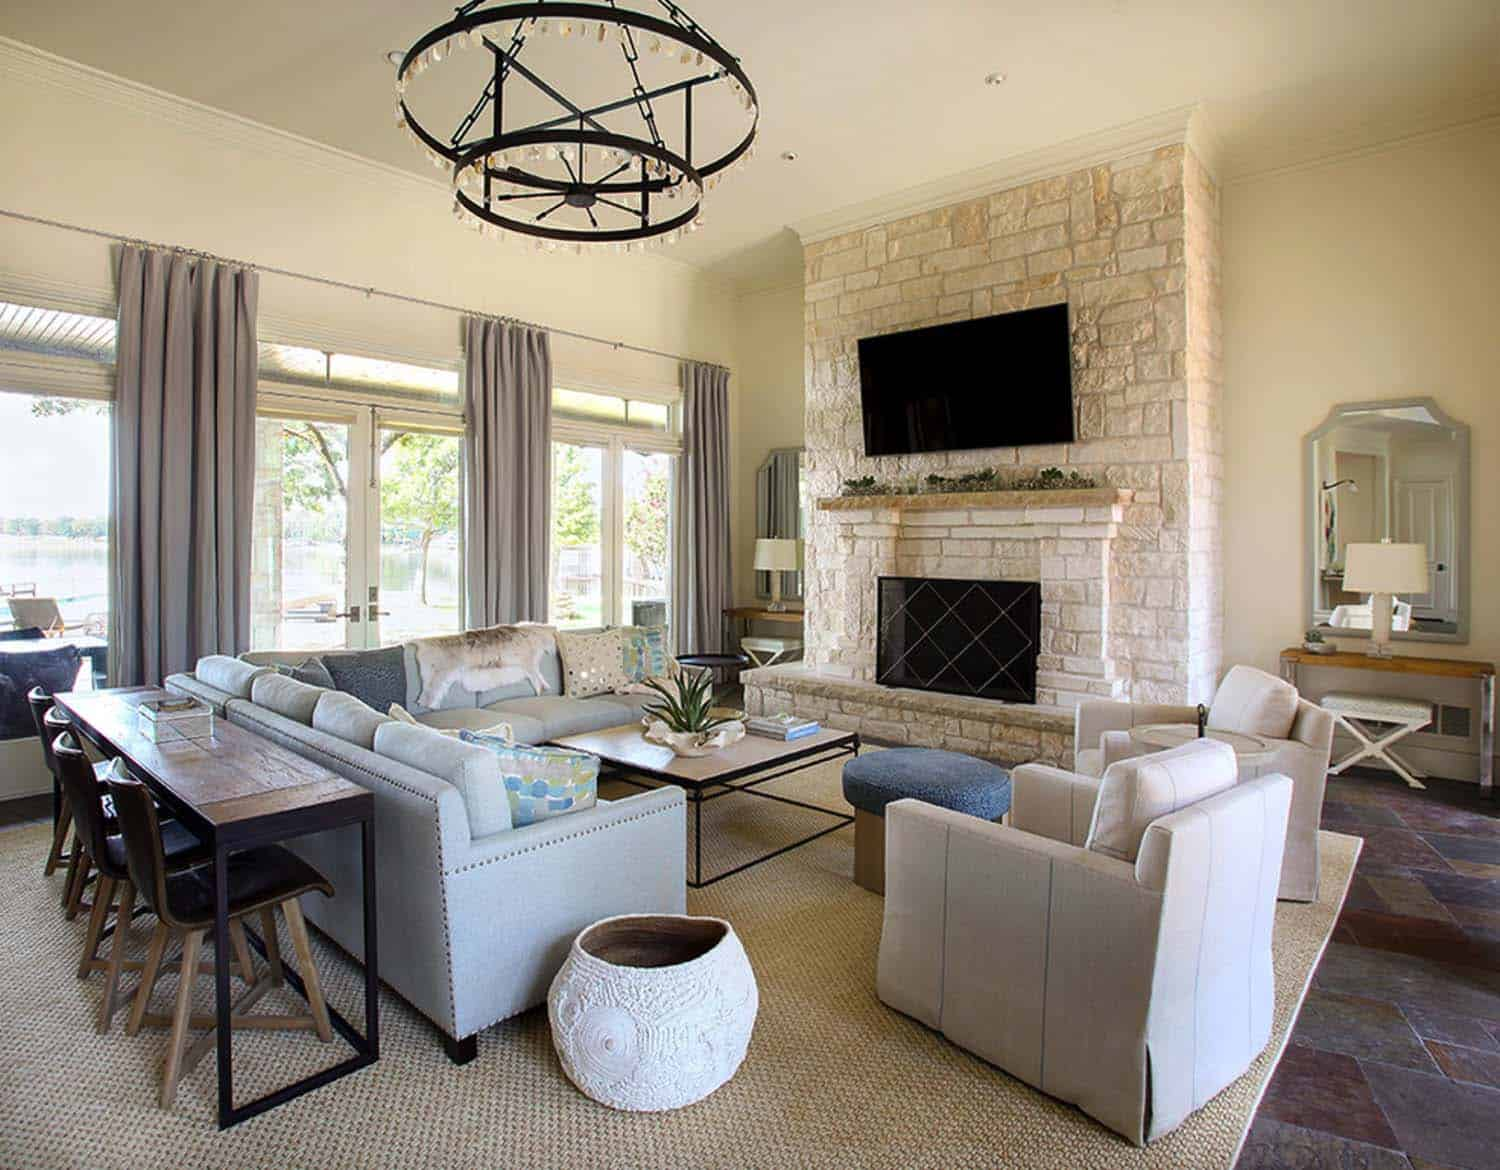 Beautiful Family Home In Texas Showcases Fresh And Airy